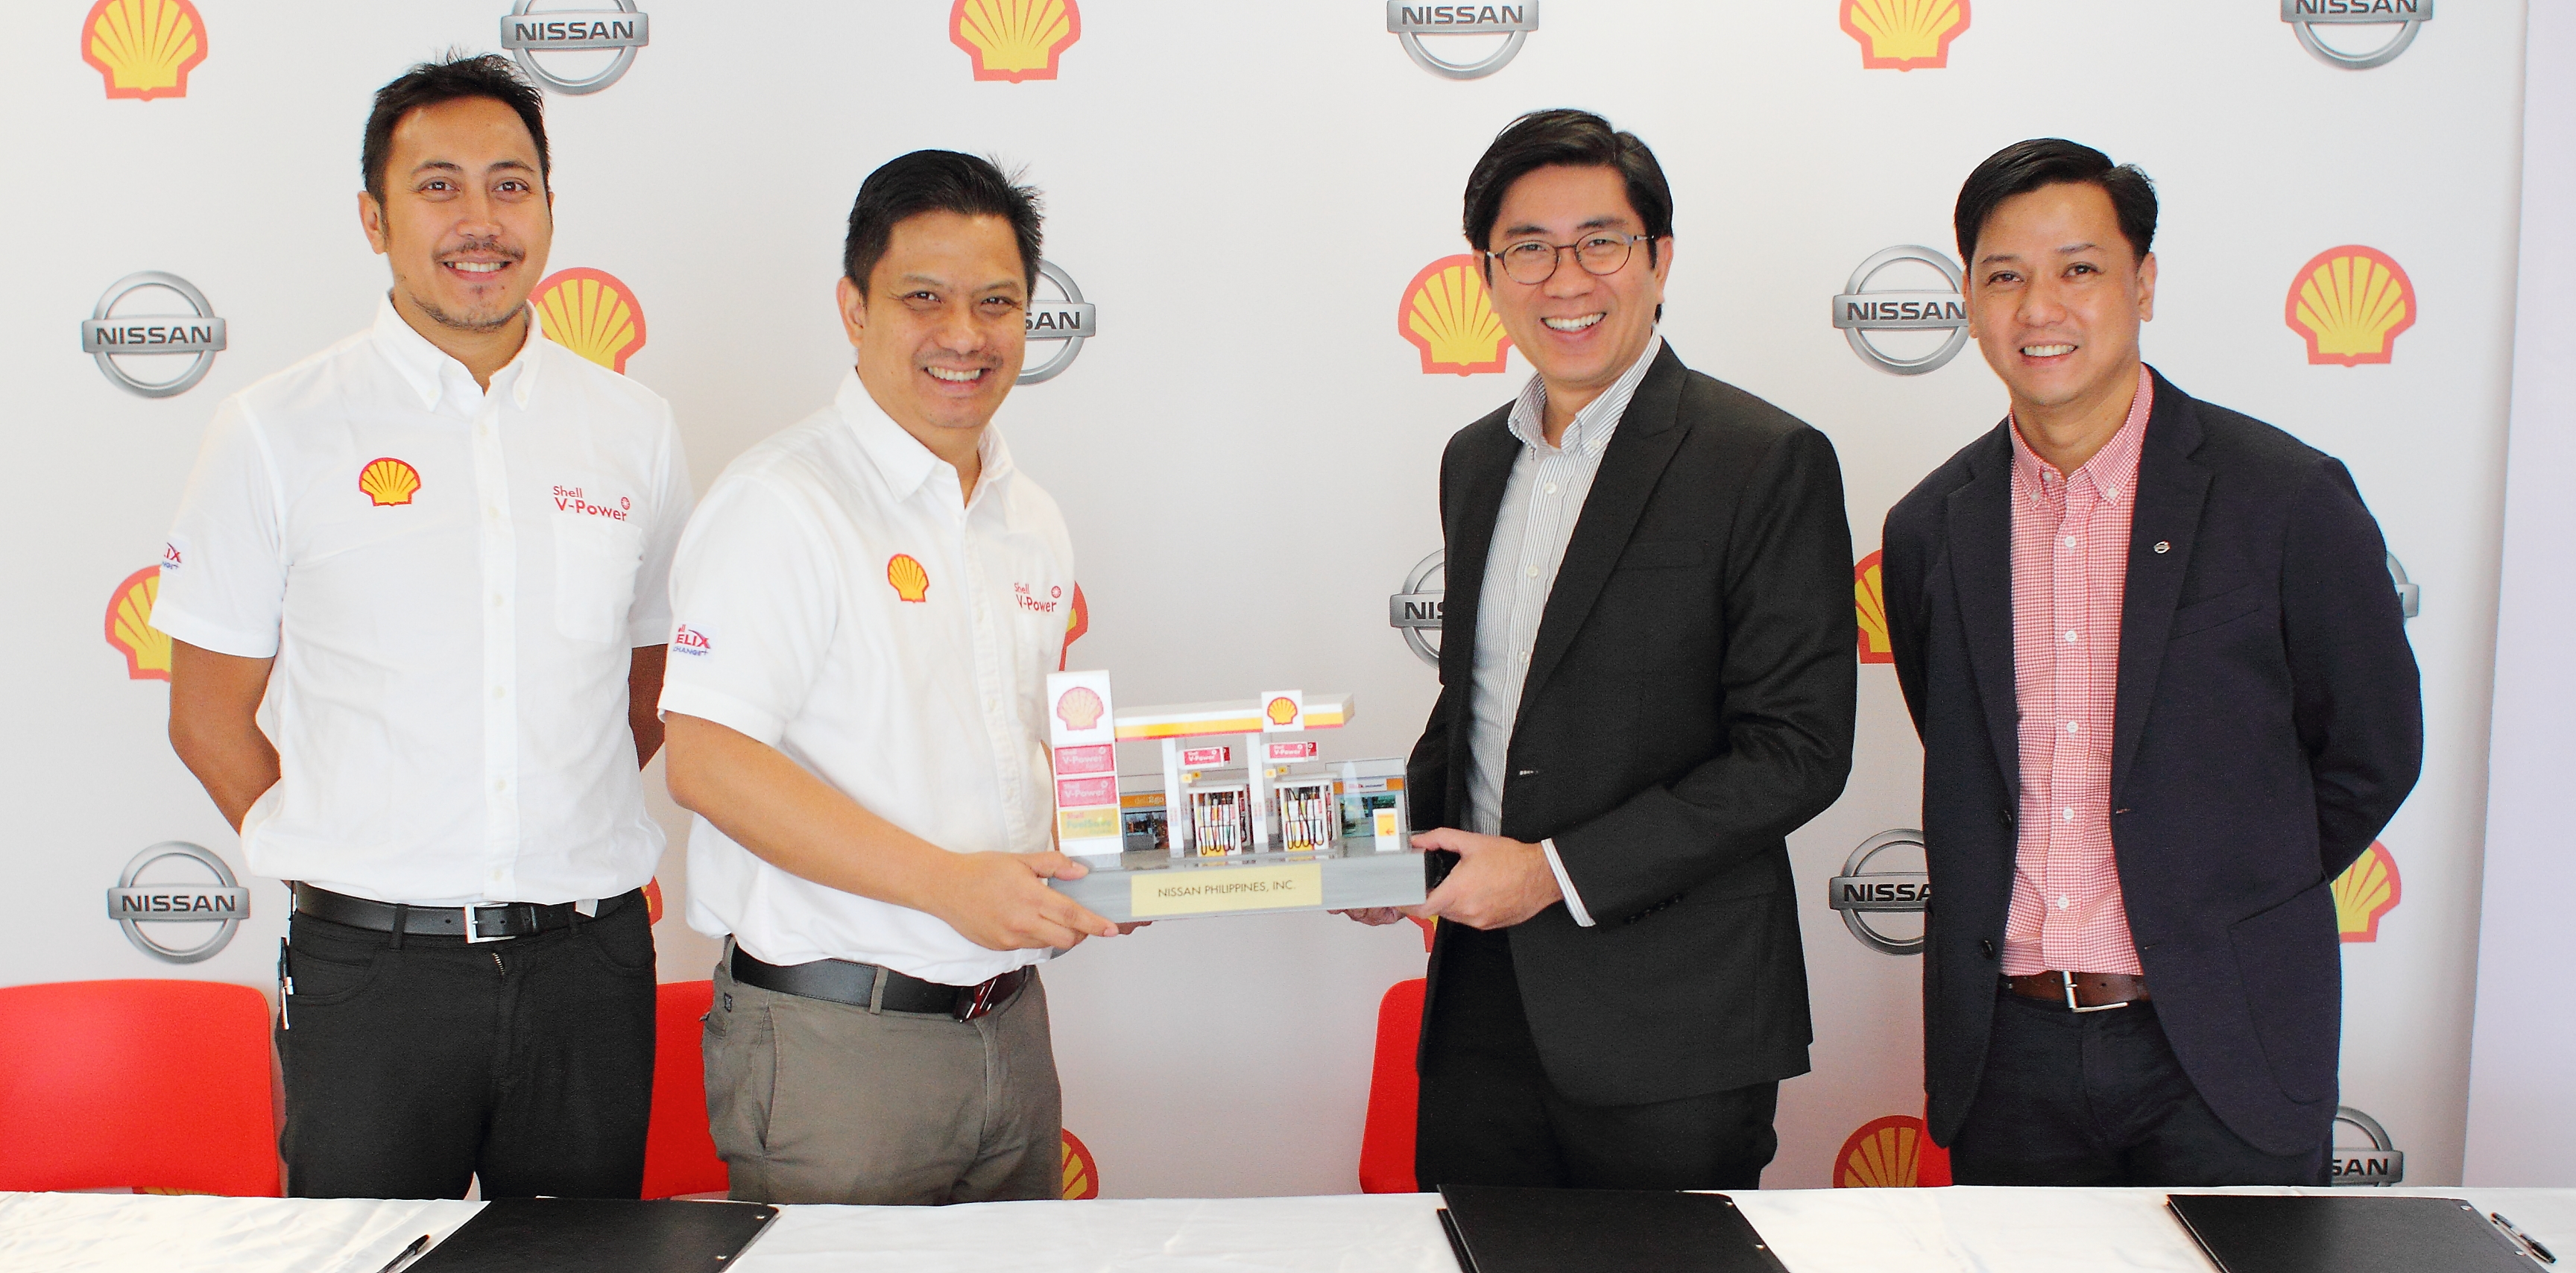 Shell is the Fuel of Choice for Nissan Philippines